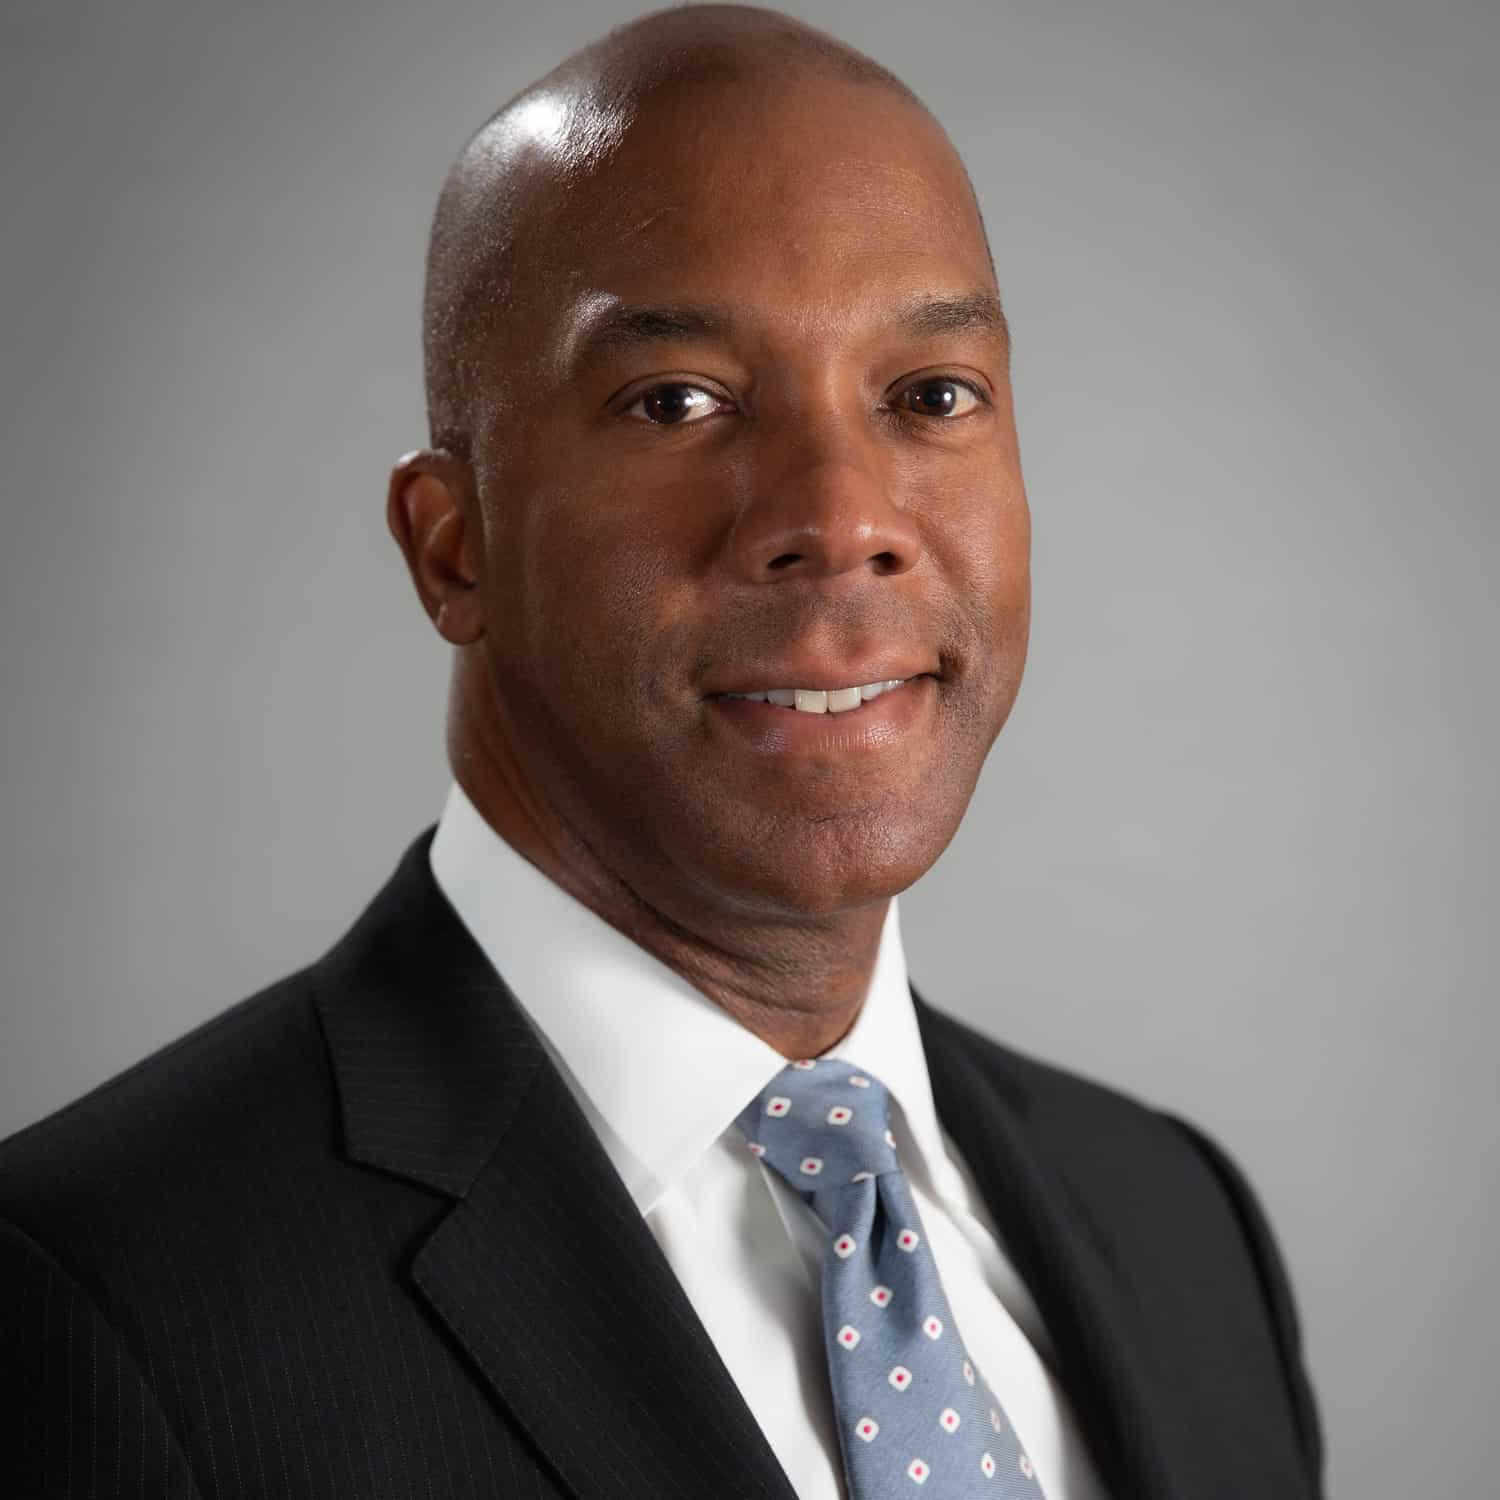 Darron Anderson is President, Chief Executive Officer and Director at Ranger Energy Services